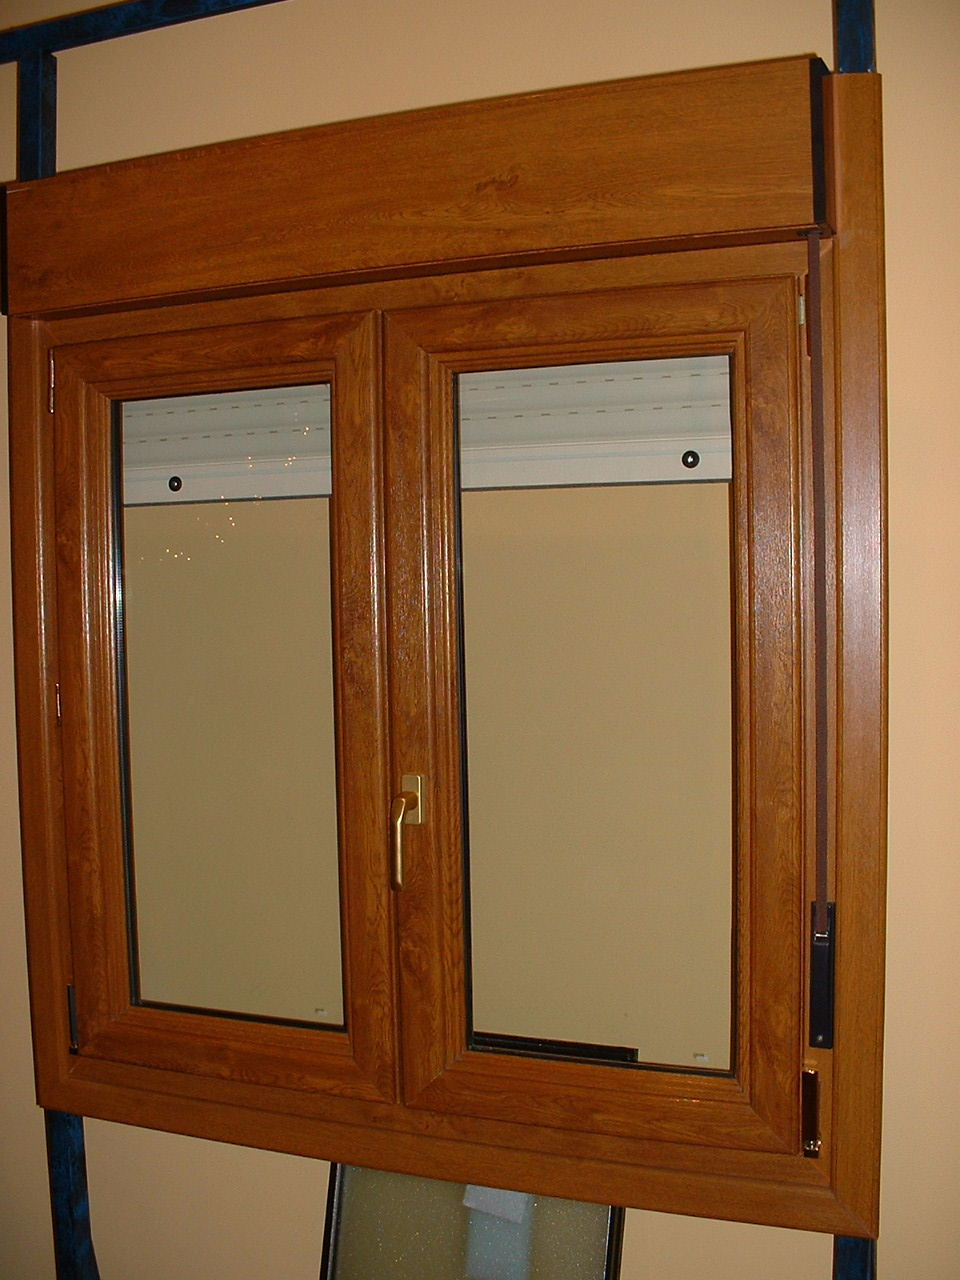 Ventanas aluminio color madera affordable imgenes de for Ventanas pvc madera